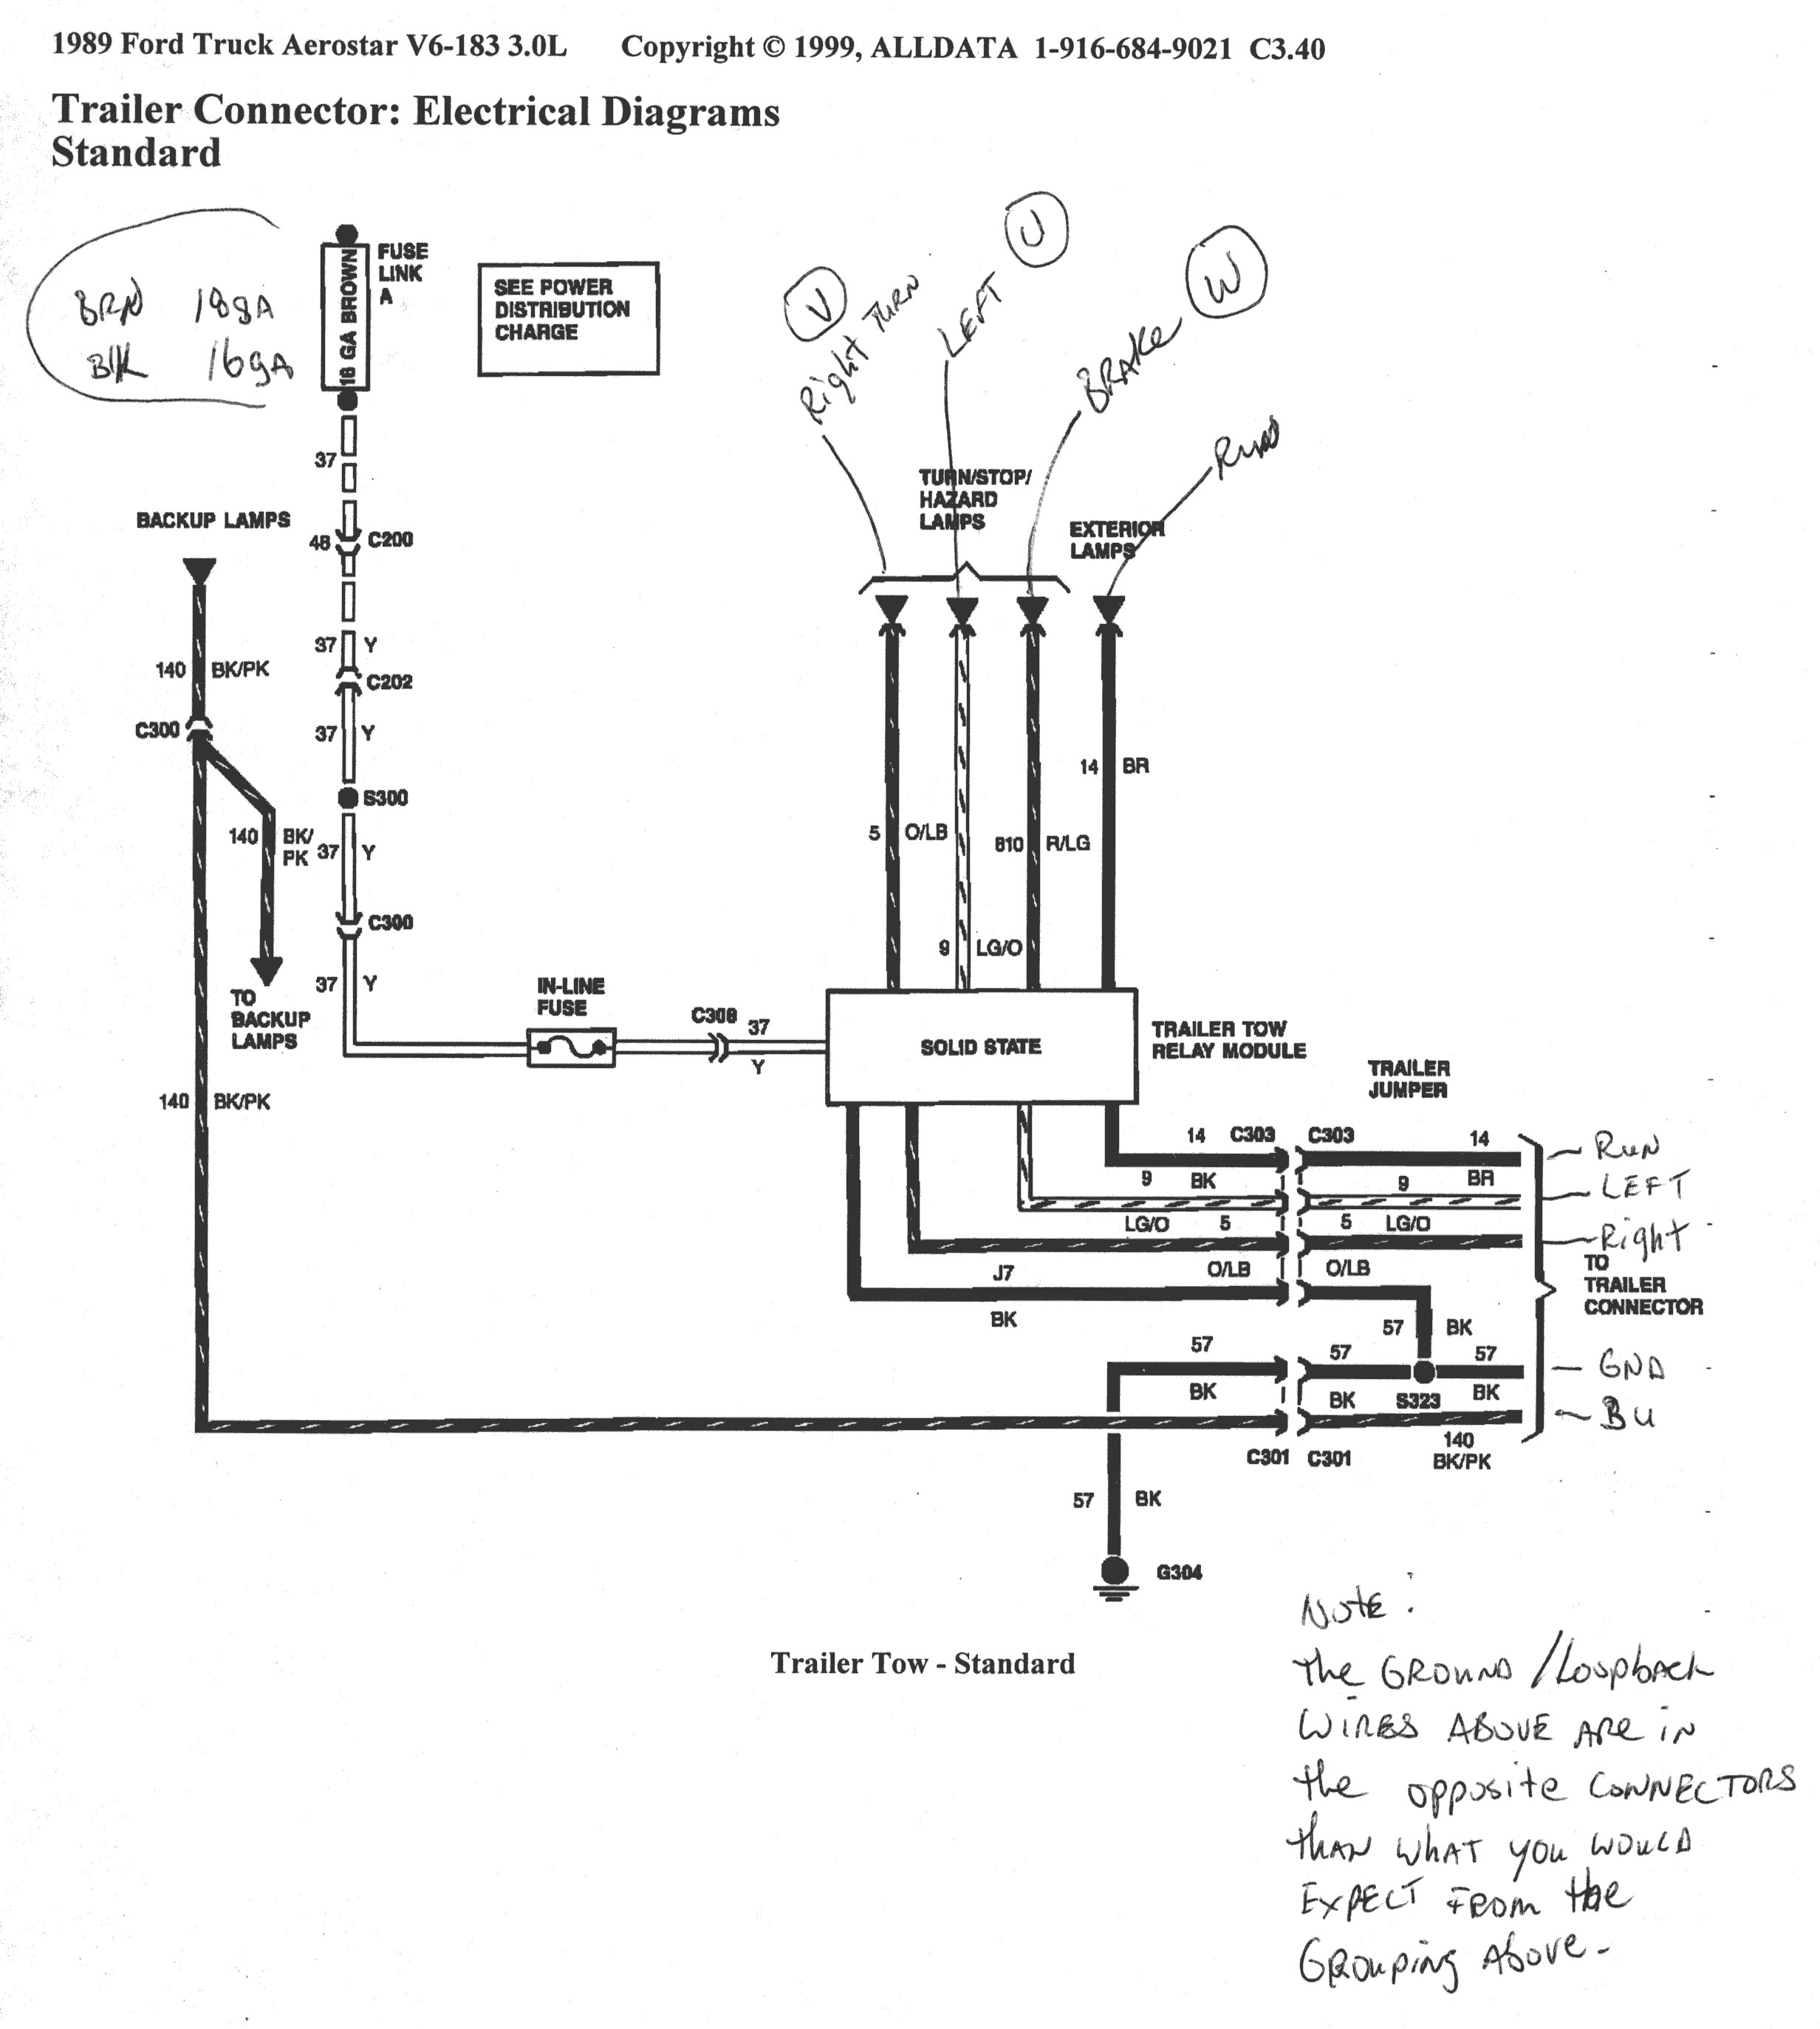 c26_865] 2001 f350 trailer wiring diagram | wiring diagram c26_865 |  cycle-relation.centrostudimad.it  centrostudimad.it